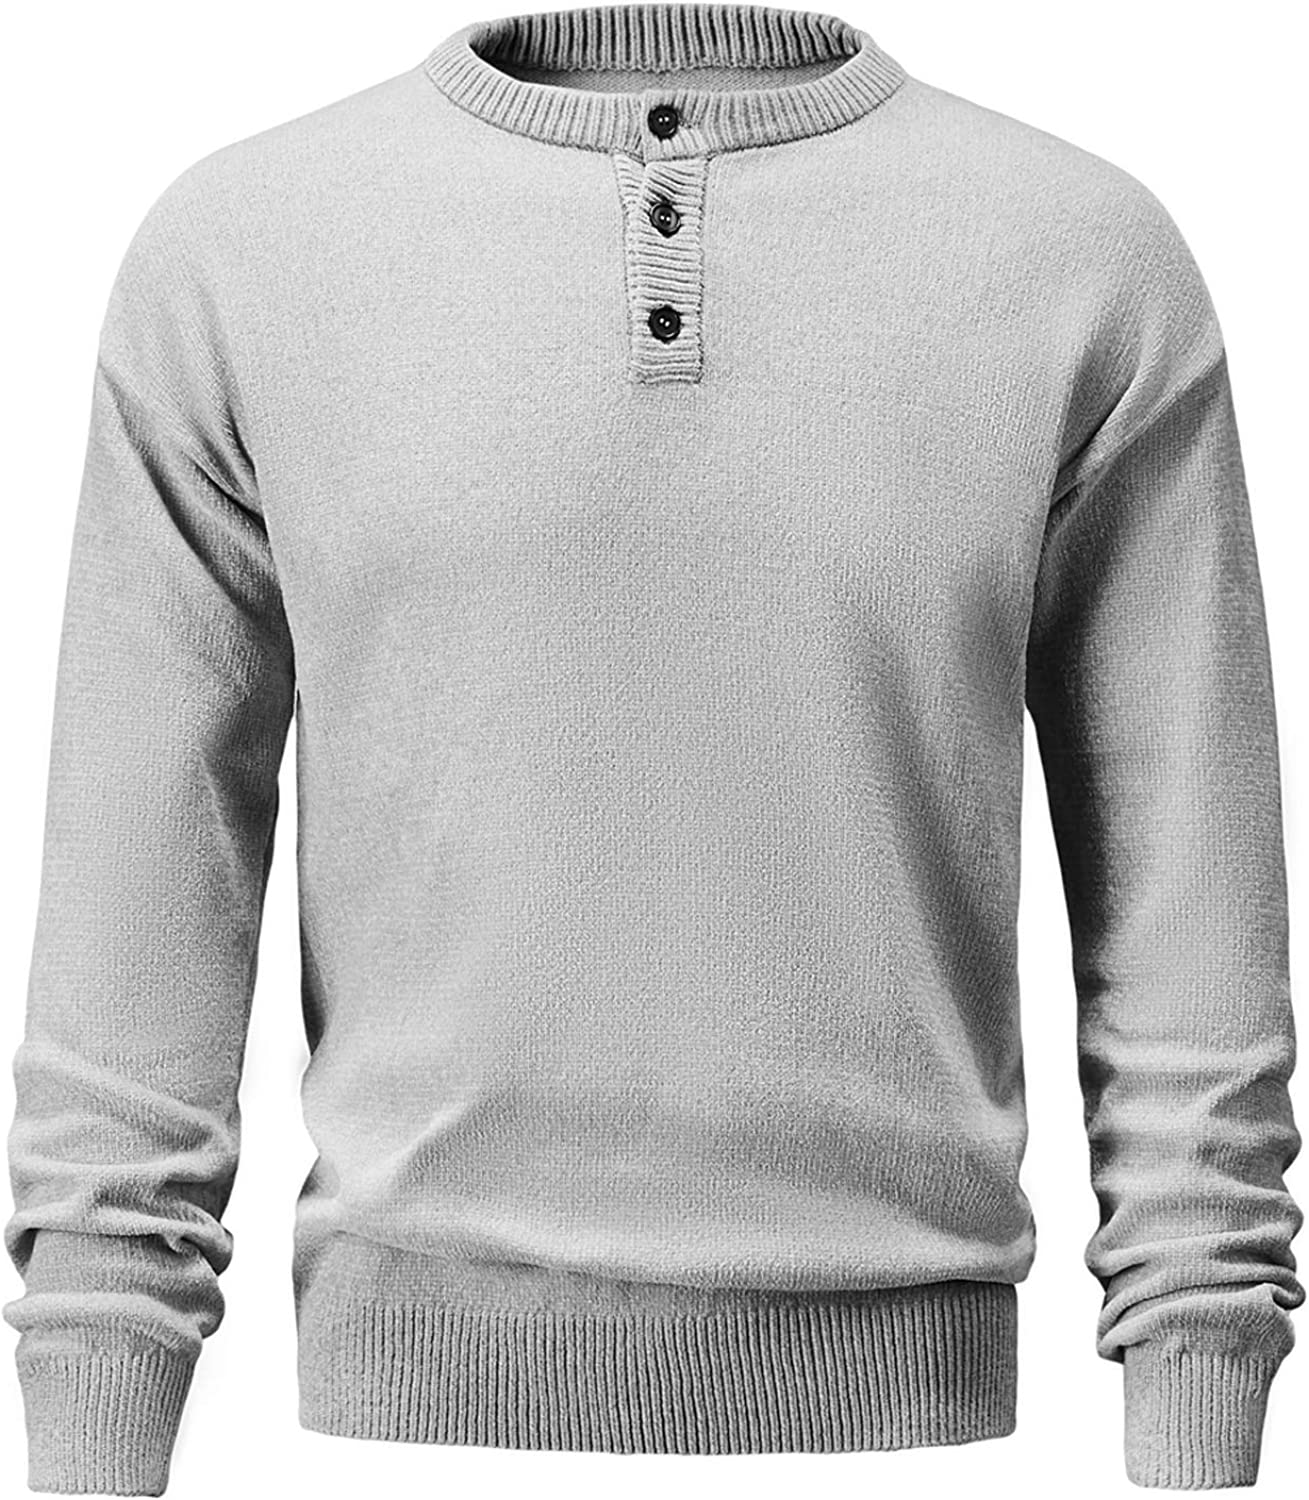 Long Beach Mall GABOB Men's Pullover Sweater Crewneck Challenge the lowest price of Japan Henley Shirt with Knitted